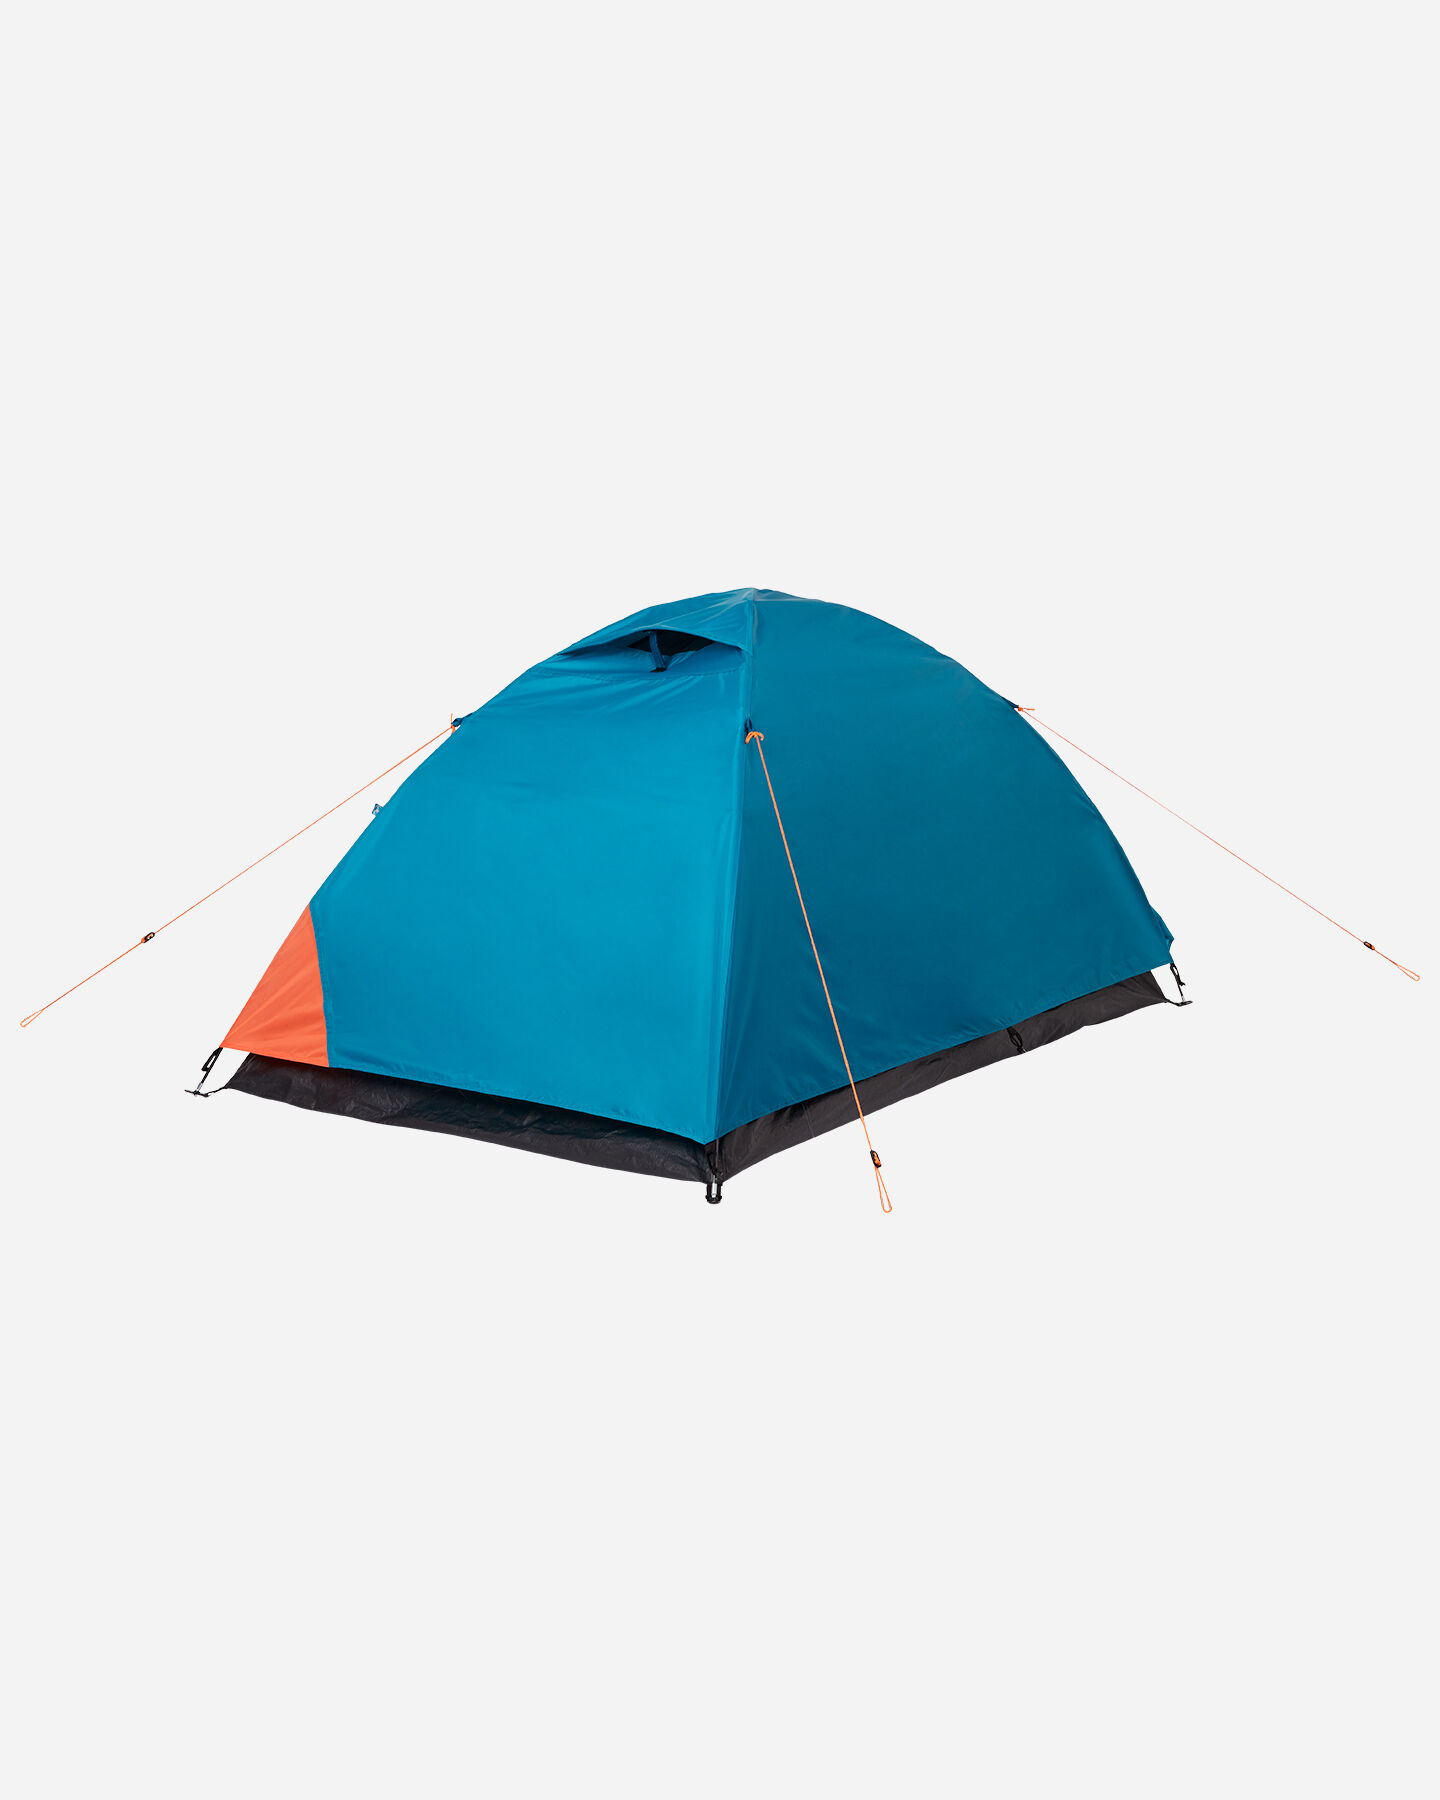 Tenda MCKINLEY VEGA 10.2 S2021951|900|- scatto 1